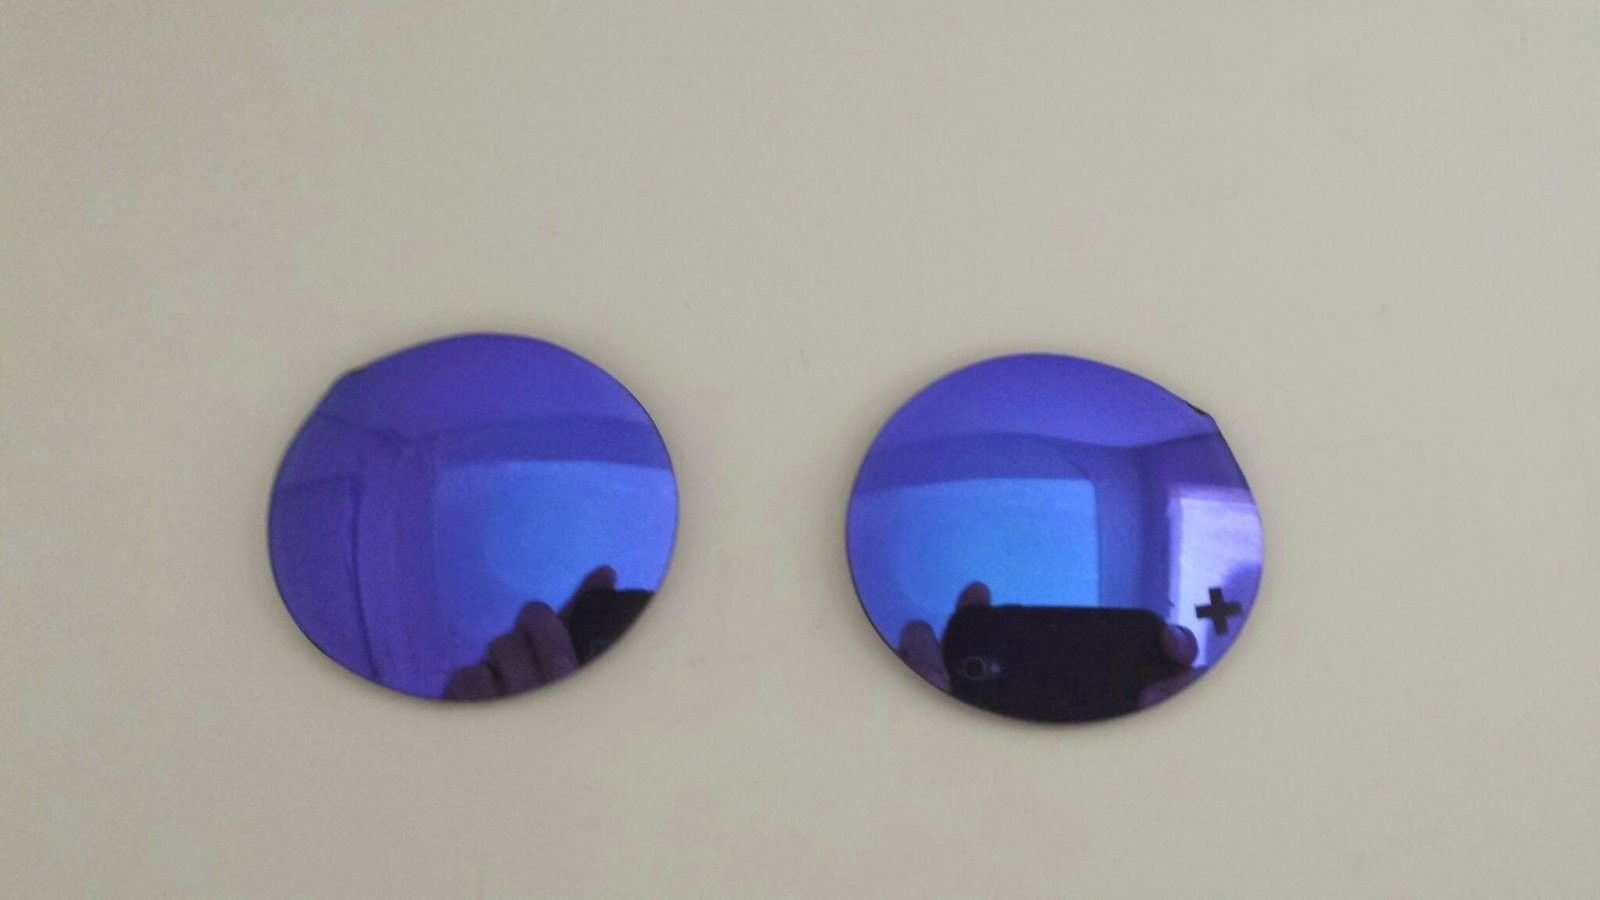 Mars Violet Non-polar Lenses With Etched Cross - 20140622_102320.jpg